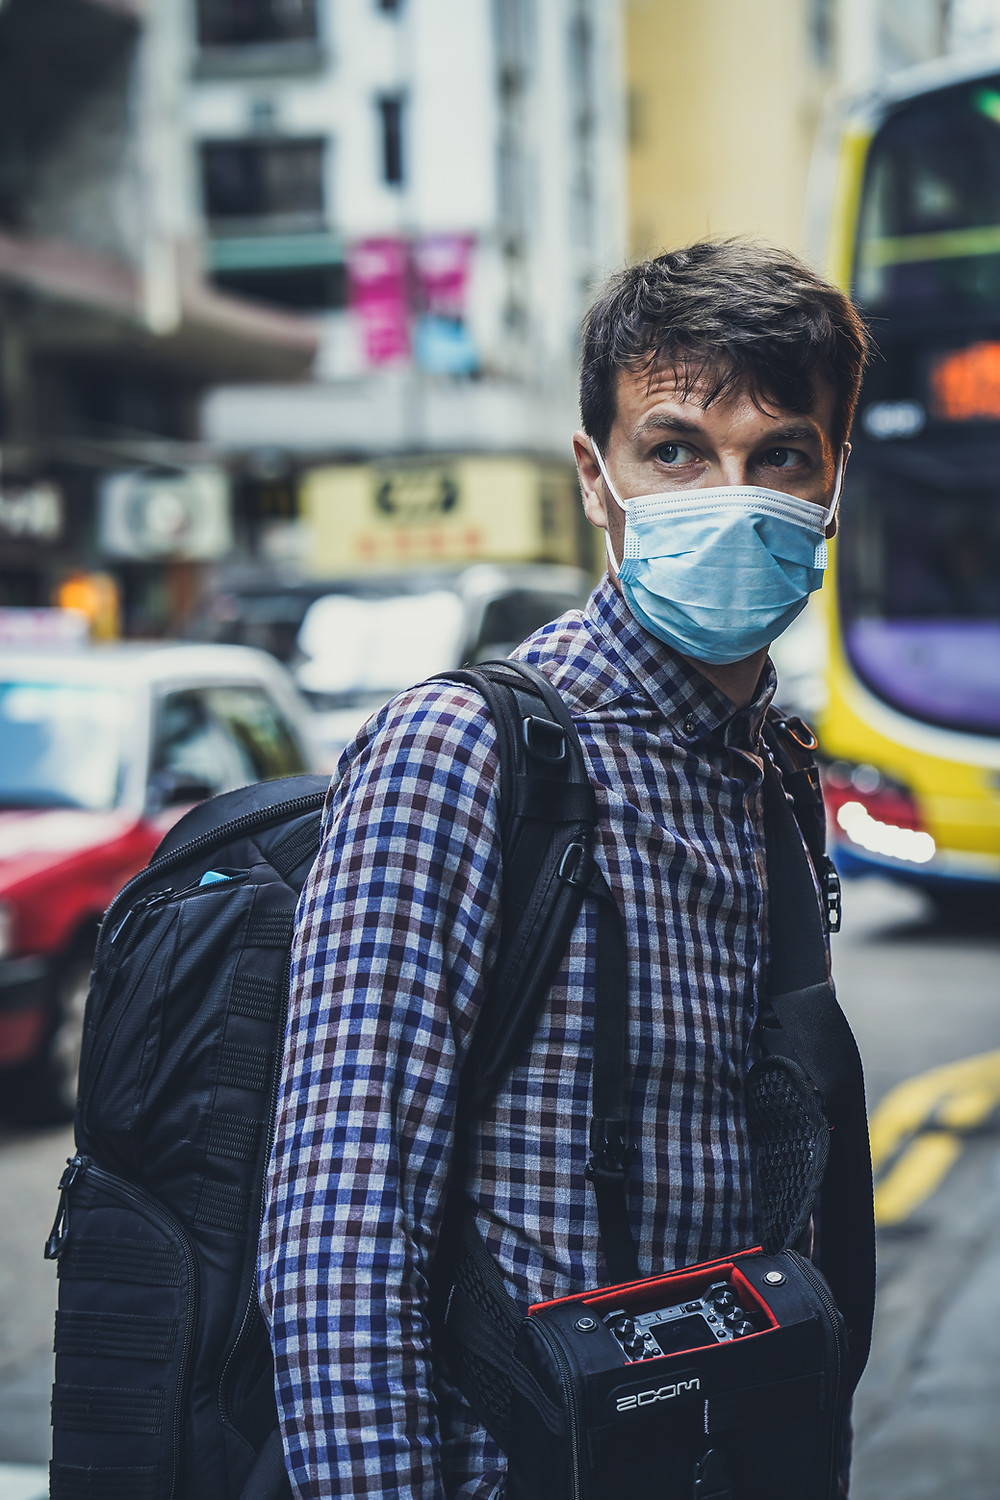 Man in a busy city wearing a medical mask.